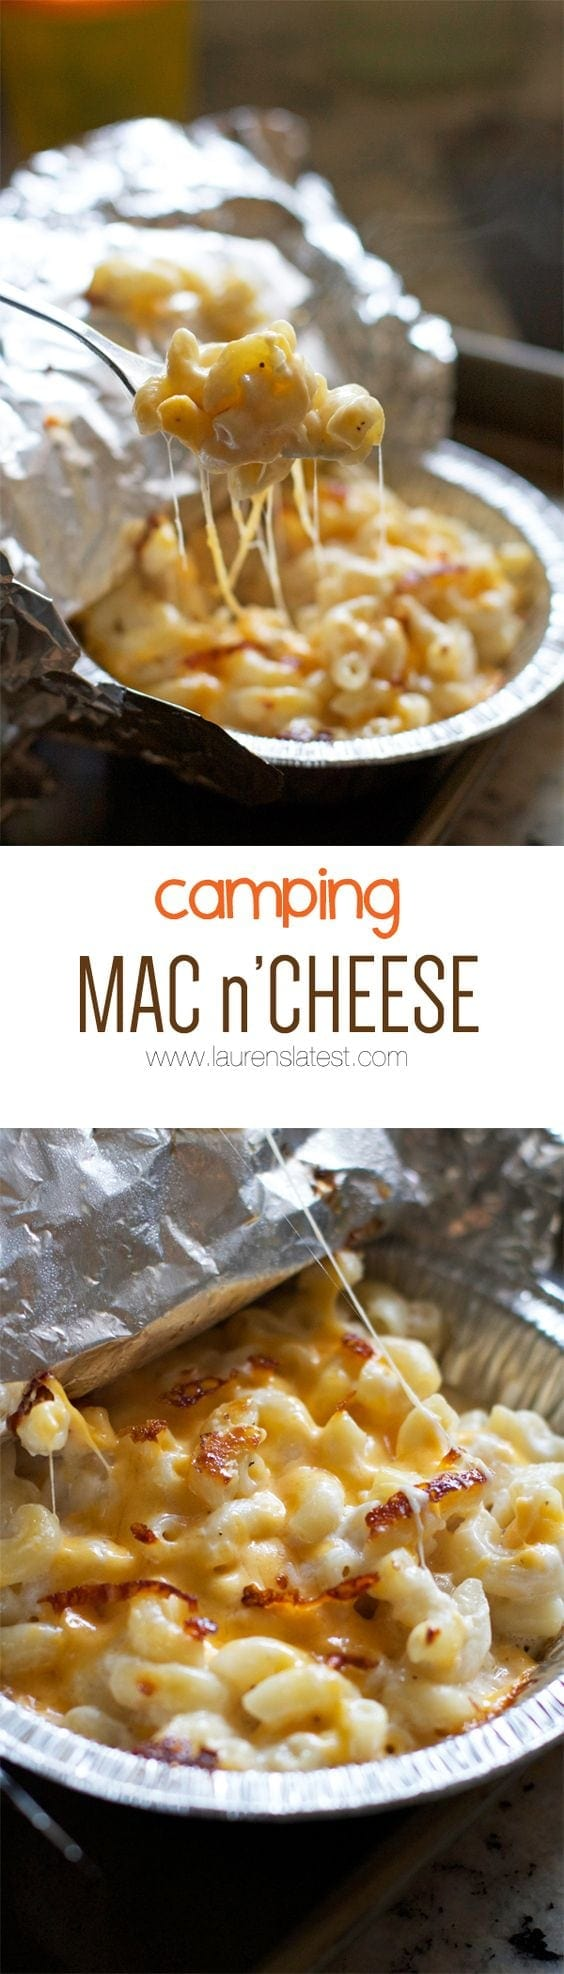 Camping Mac n' Cheese...make it over a fire, on a grill or just in the oven! So cheesy and simple!